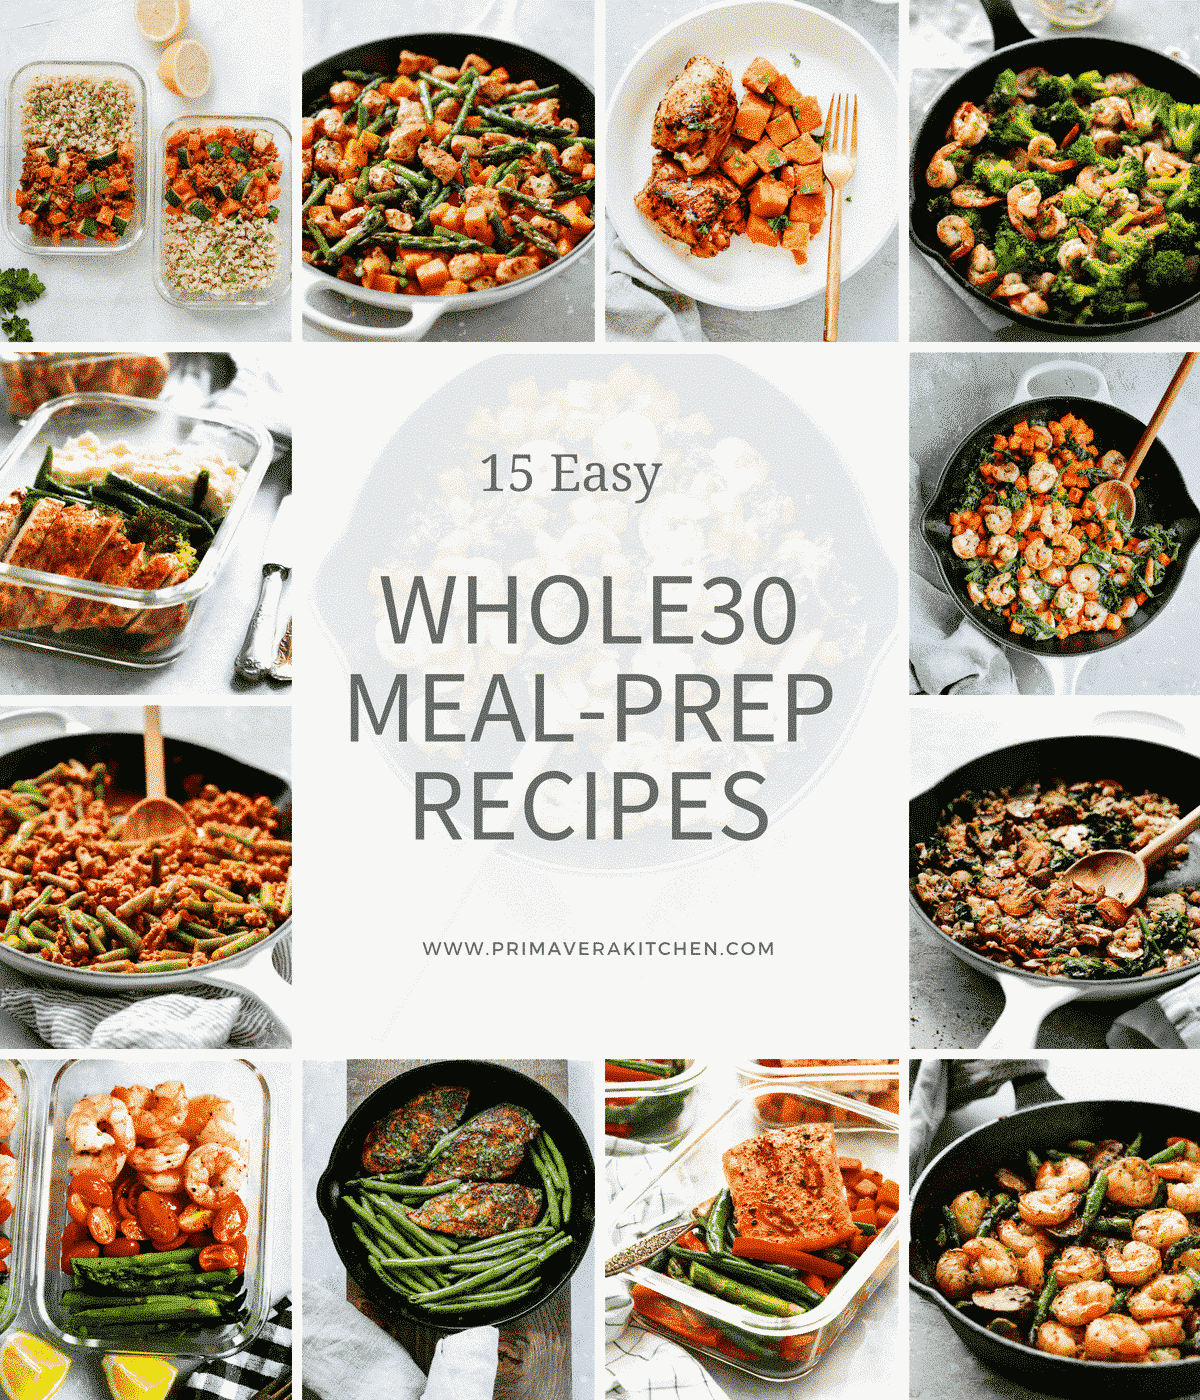 15 Easy Whole30 Meal-Prep Recipes